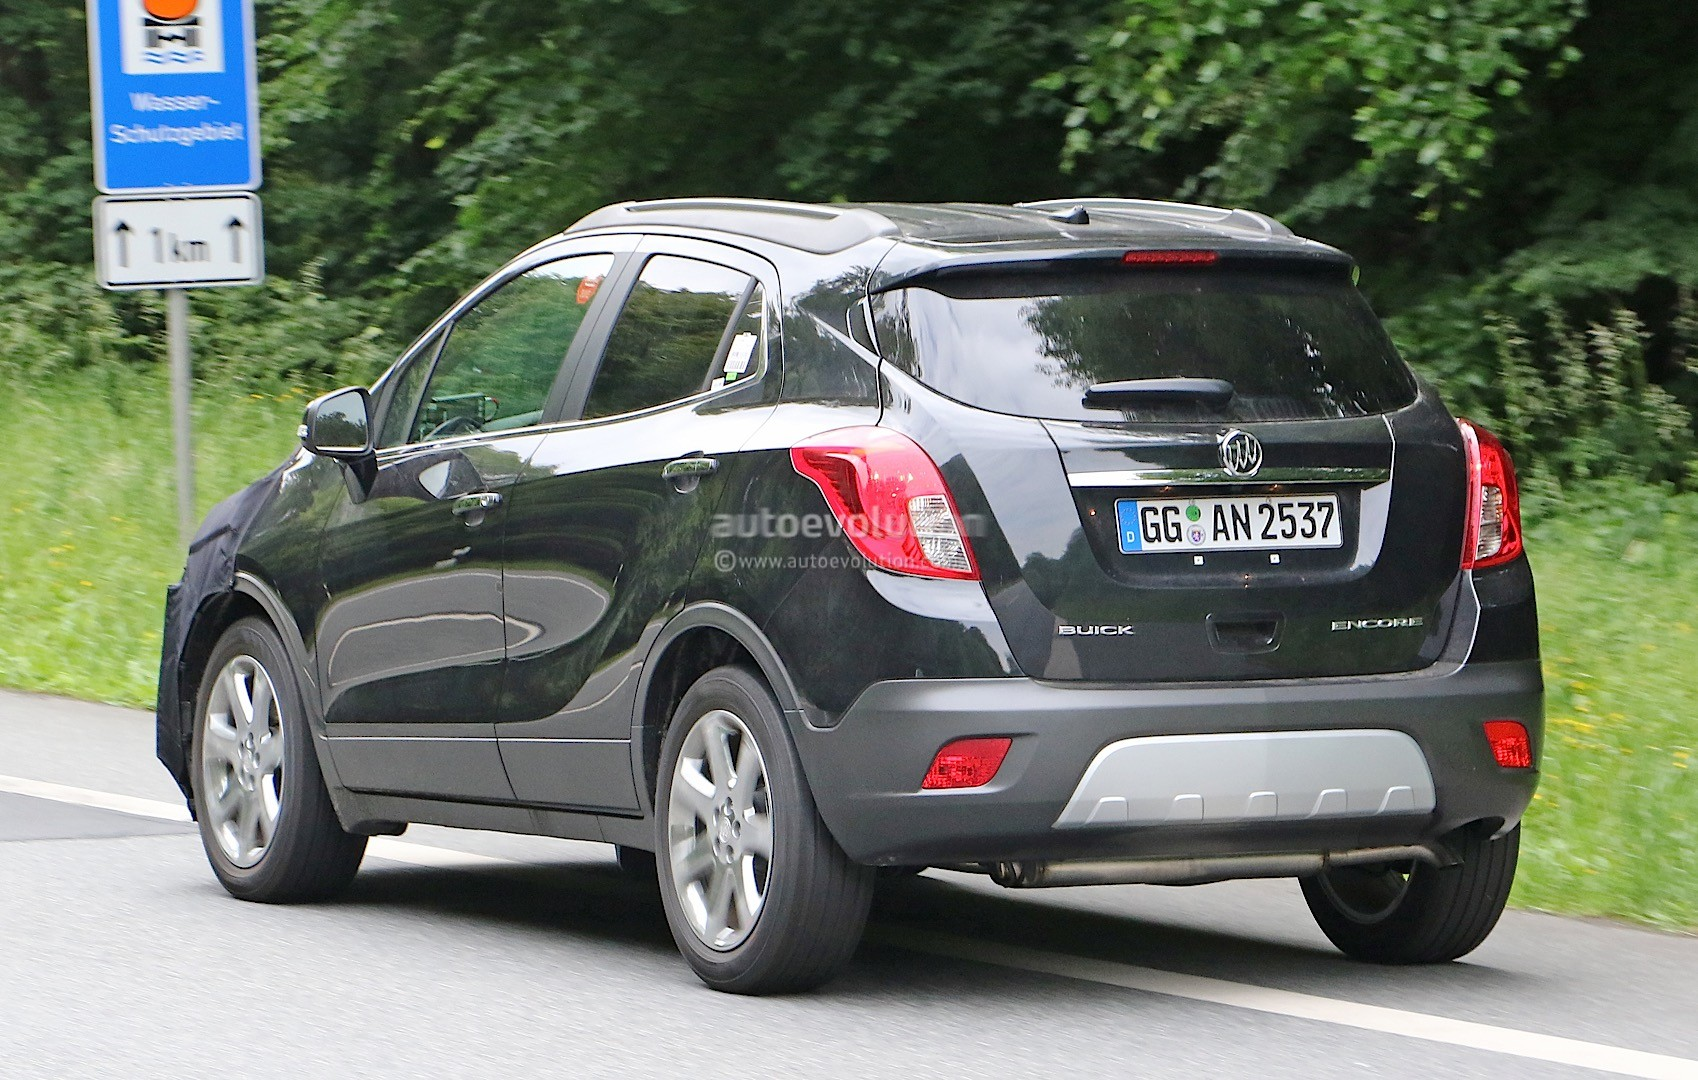 equinox ratings trax news h chevrolet earn encore safety top buick